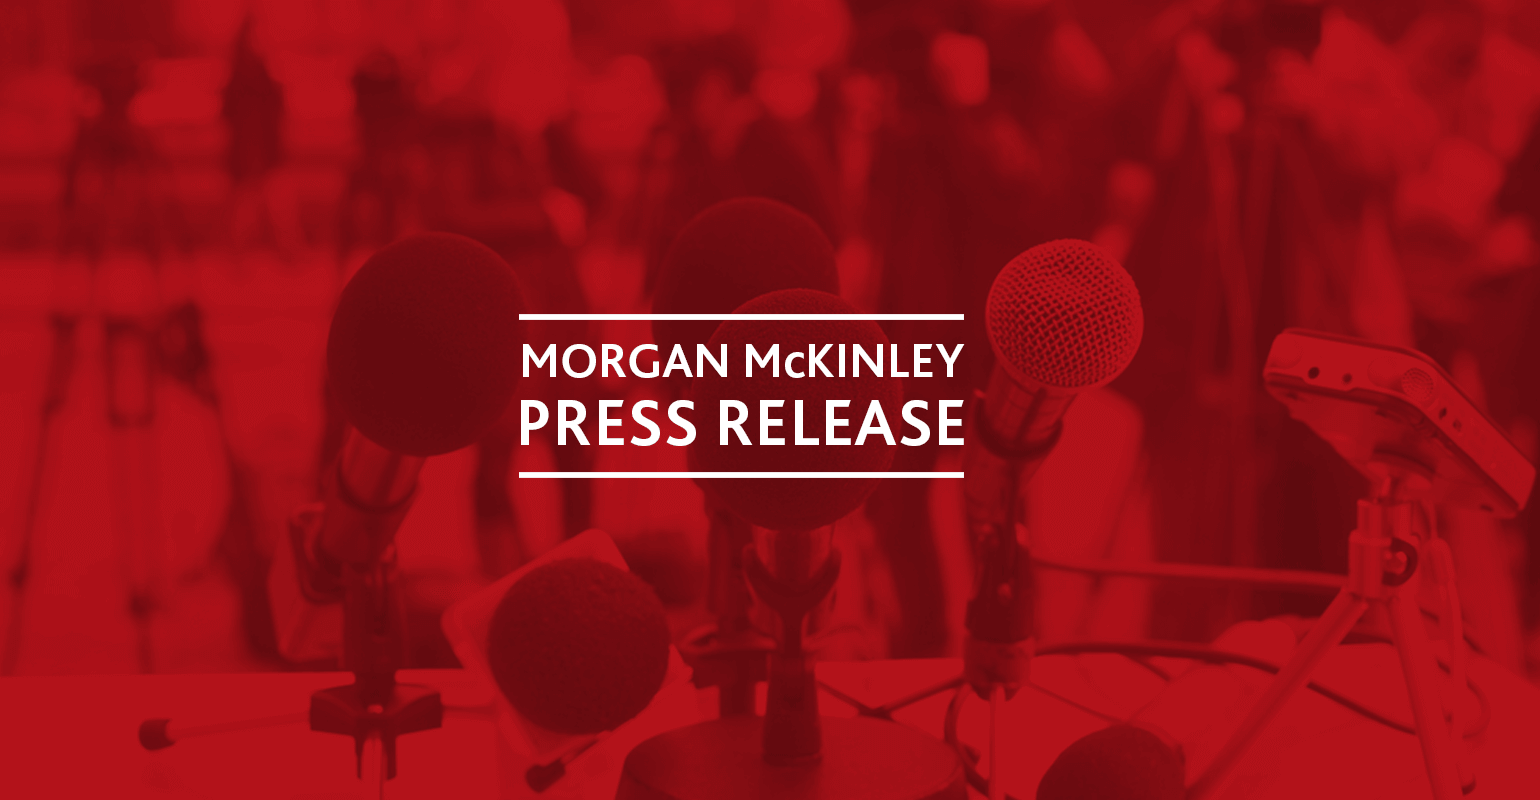 Morgan McKinley Press Release